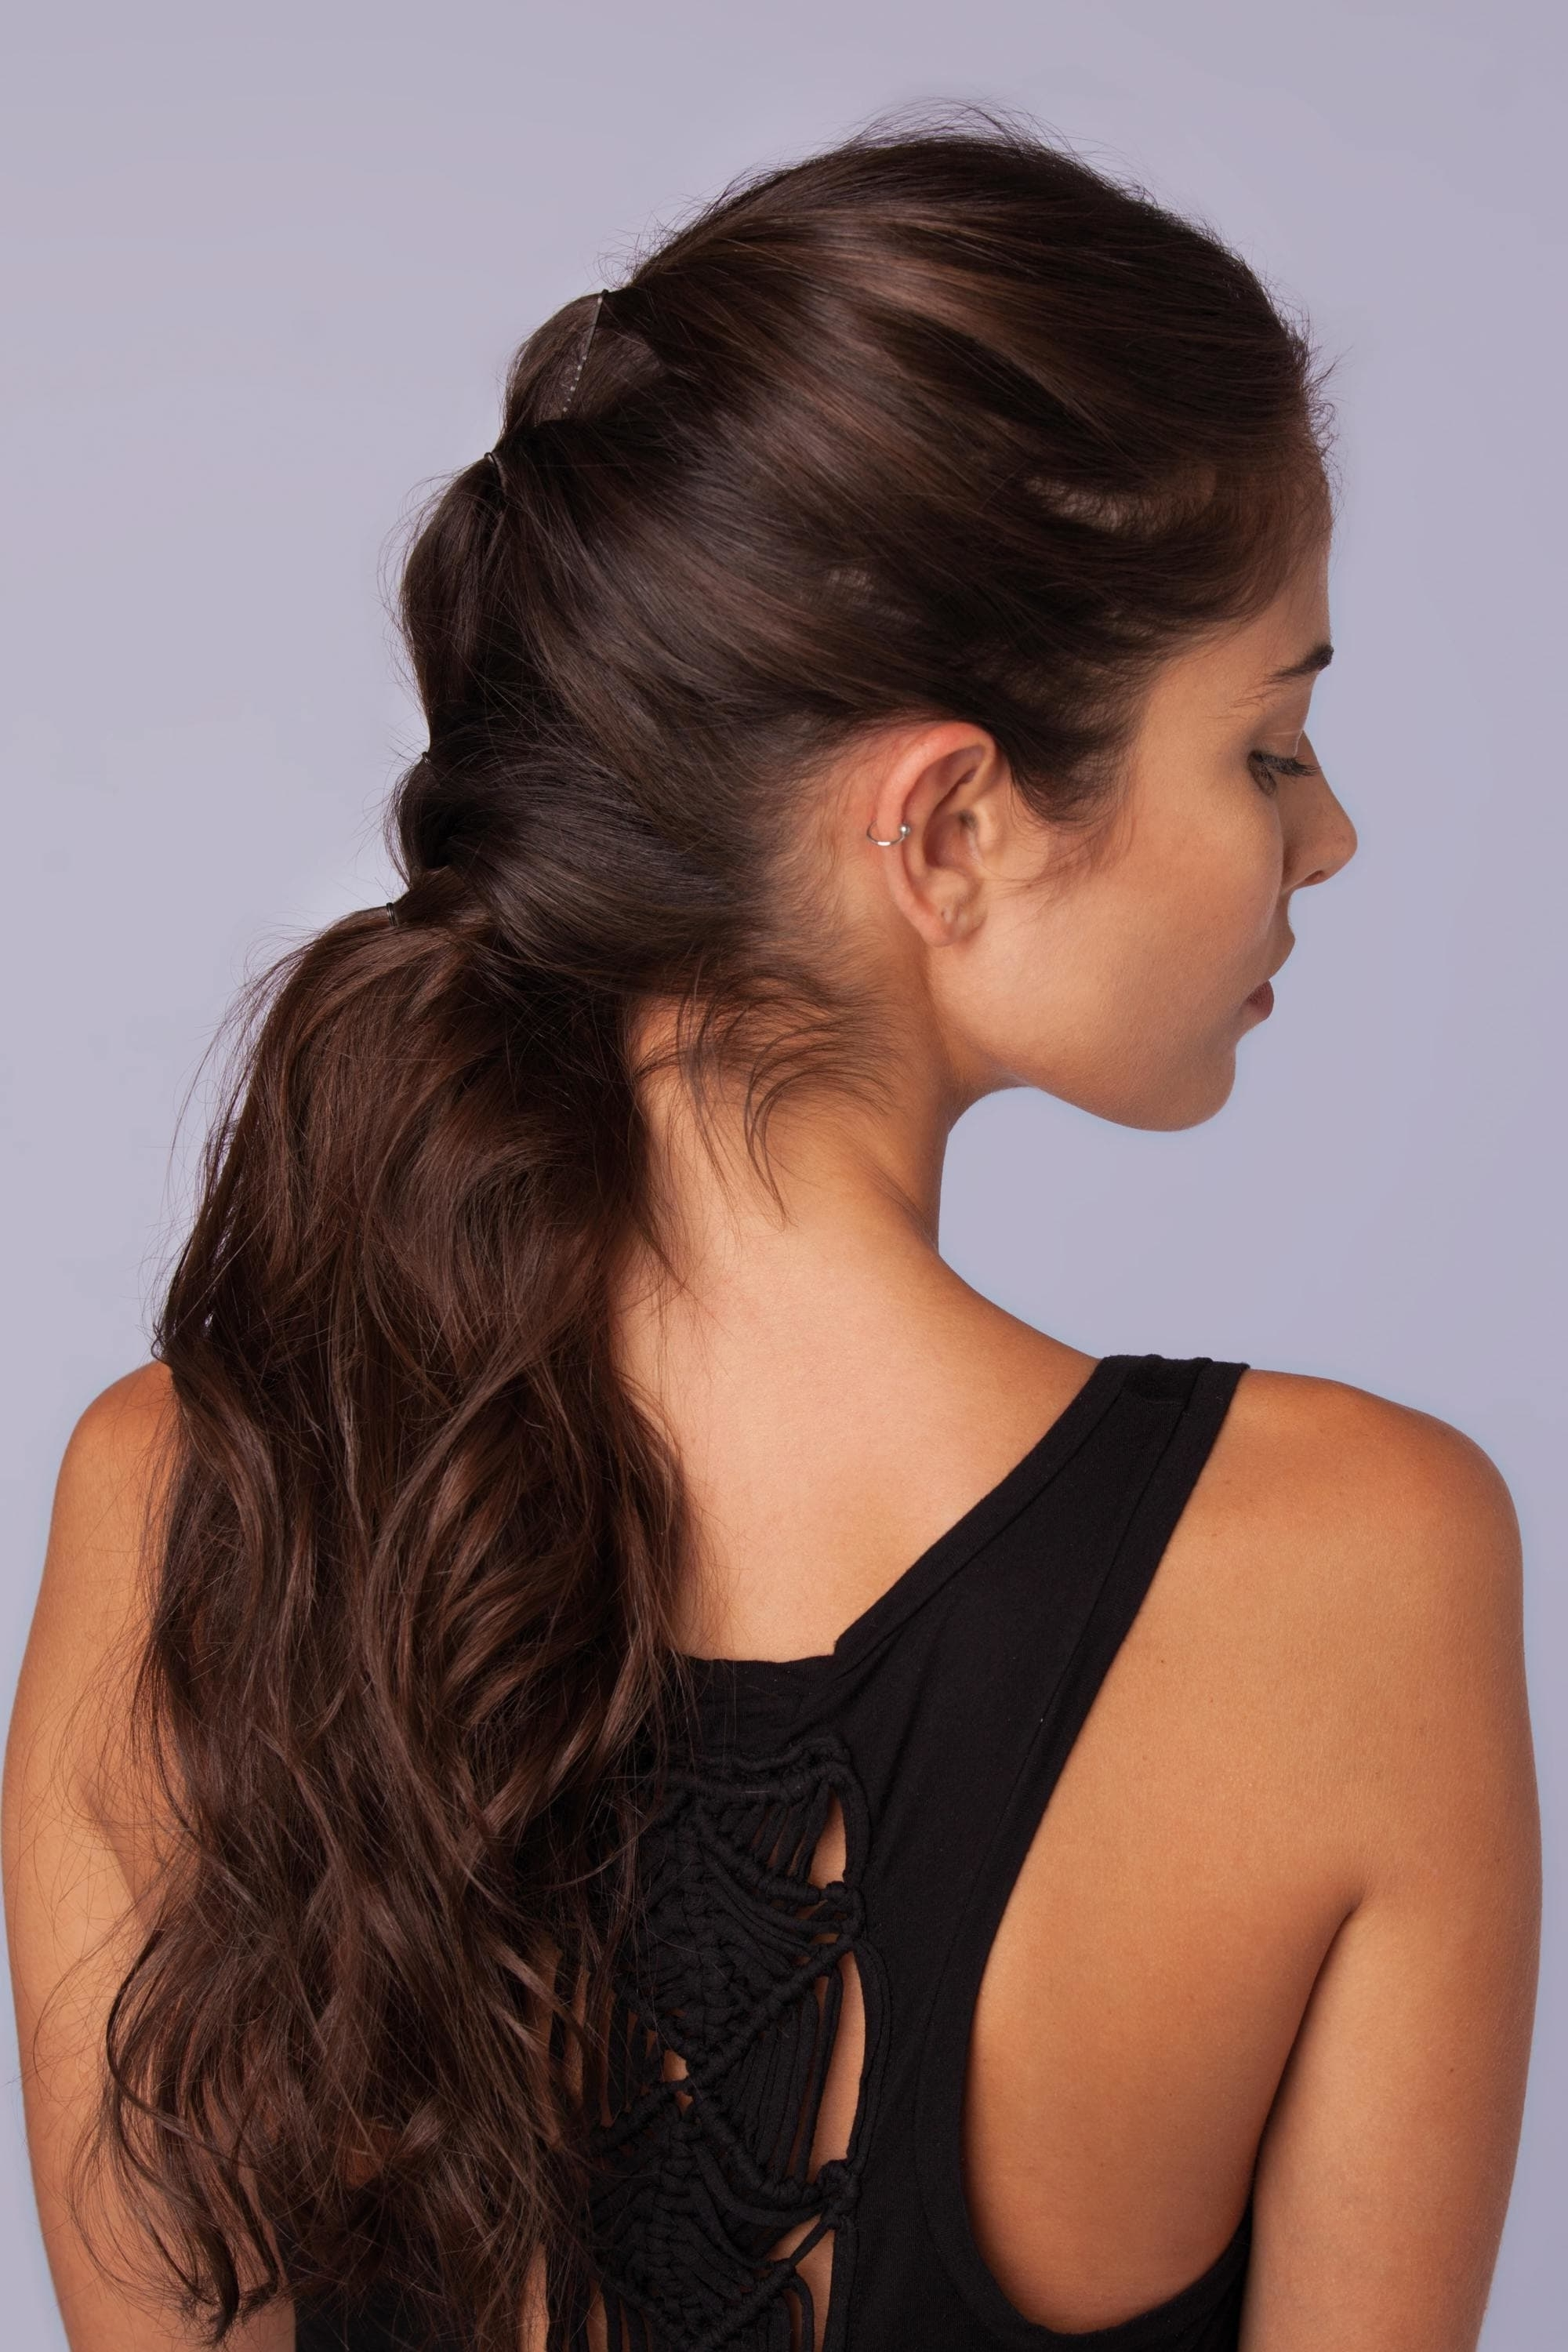 14 Fashionable Vintage Updo Hairstyles For You To Try (2018 Update) Regarding Most Current Punky Ponytail Hairstyles (View 3 of 20)